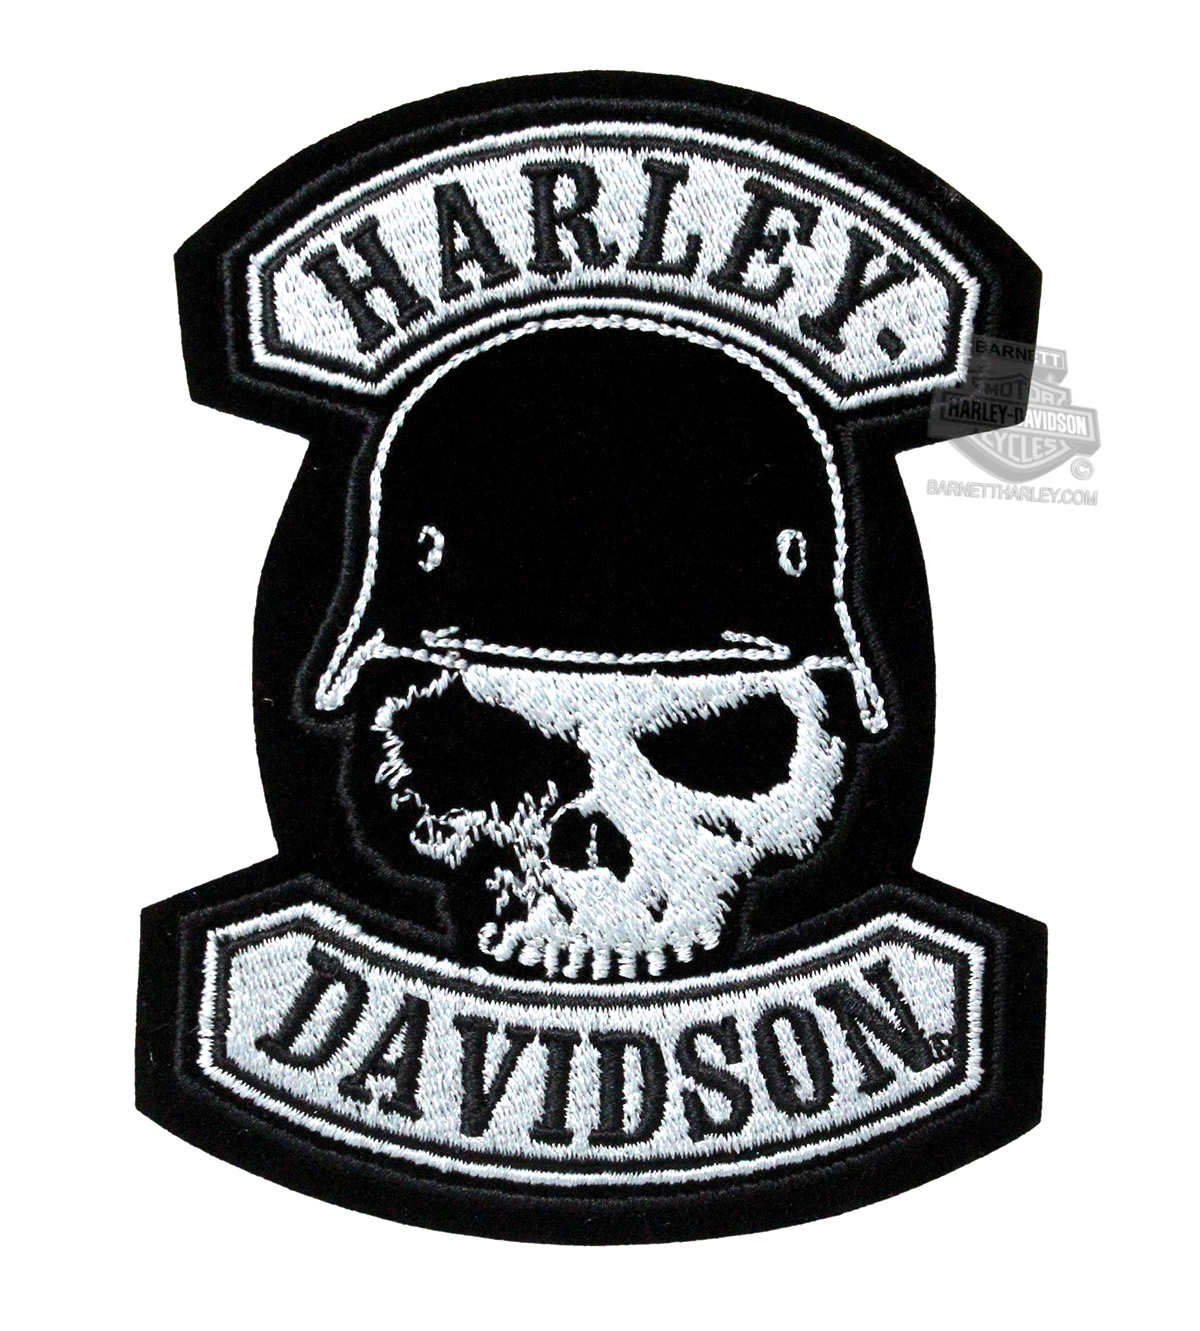 Harley Davidson Patches For Jackets Www Topsimages Com